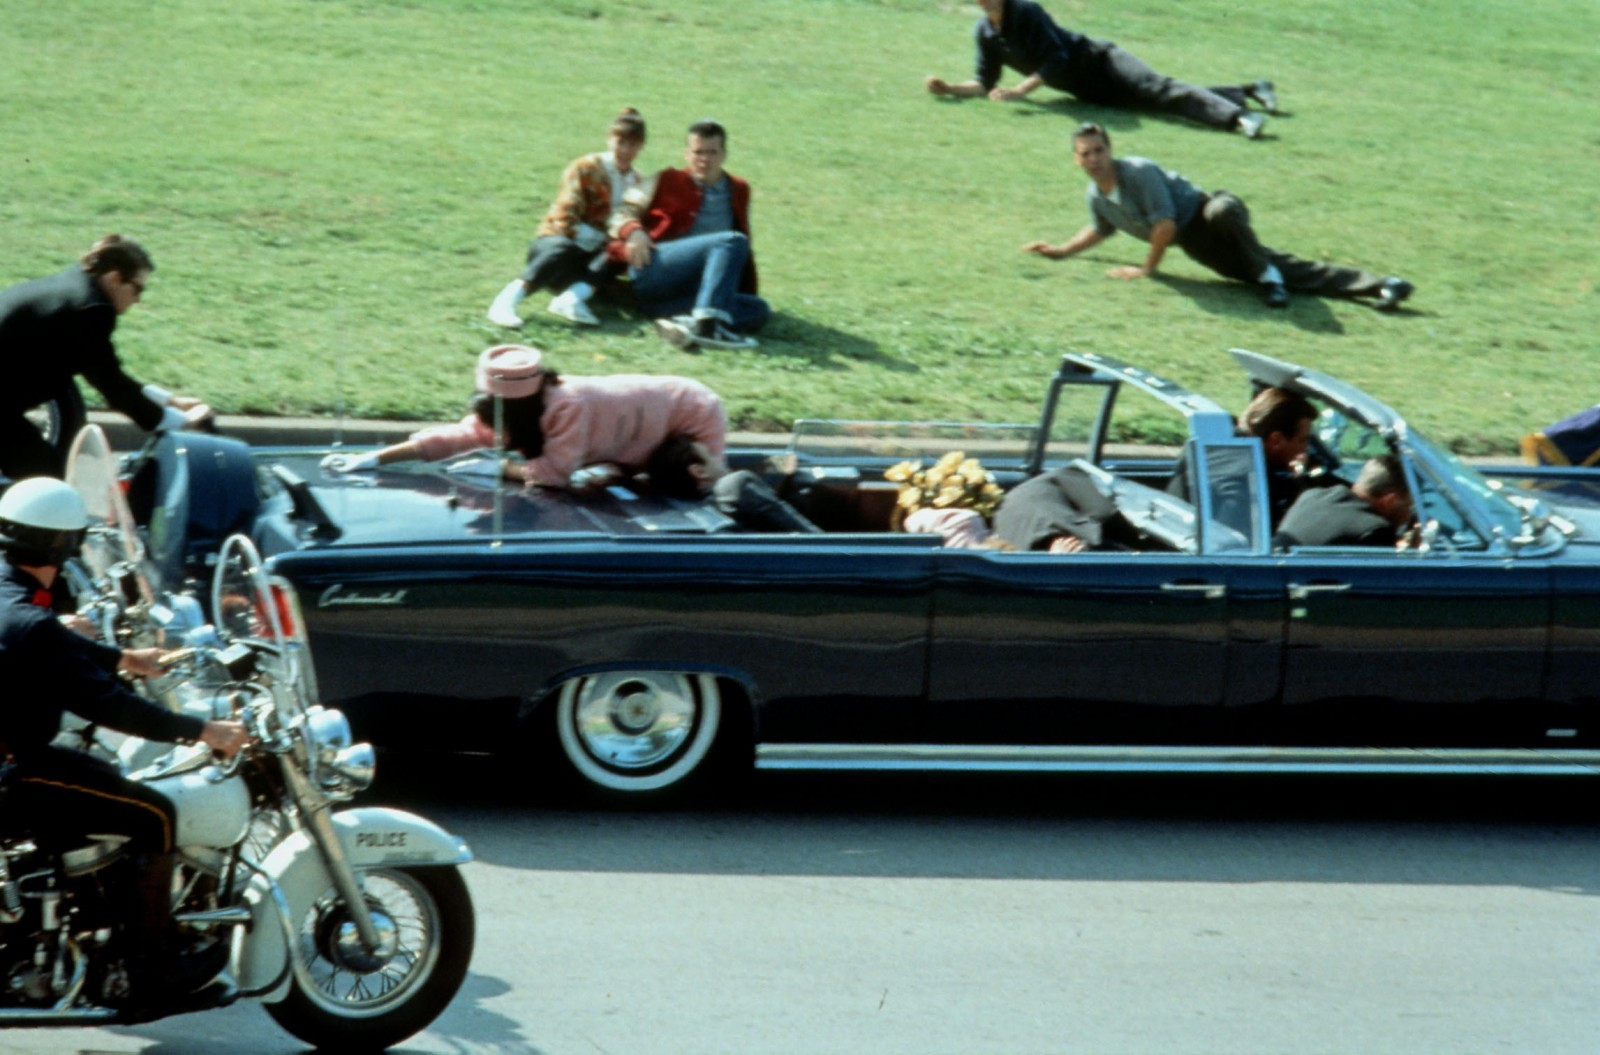 jfk assassination essay best images about jfk assassination jfk  16 mind blowing facts about who really killed jfk com 8bd2e3ea 70fd 443f ac01 6ef5d6a49981 htra211